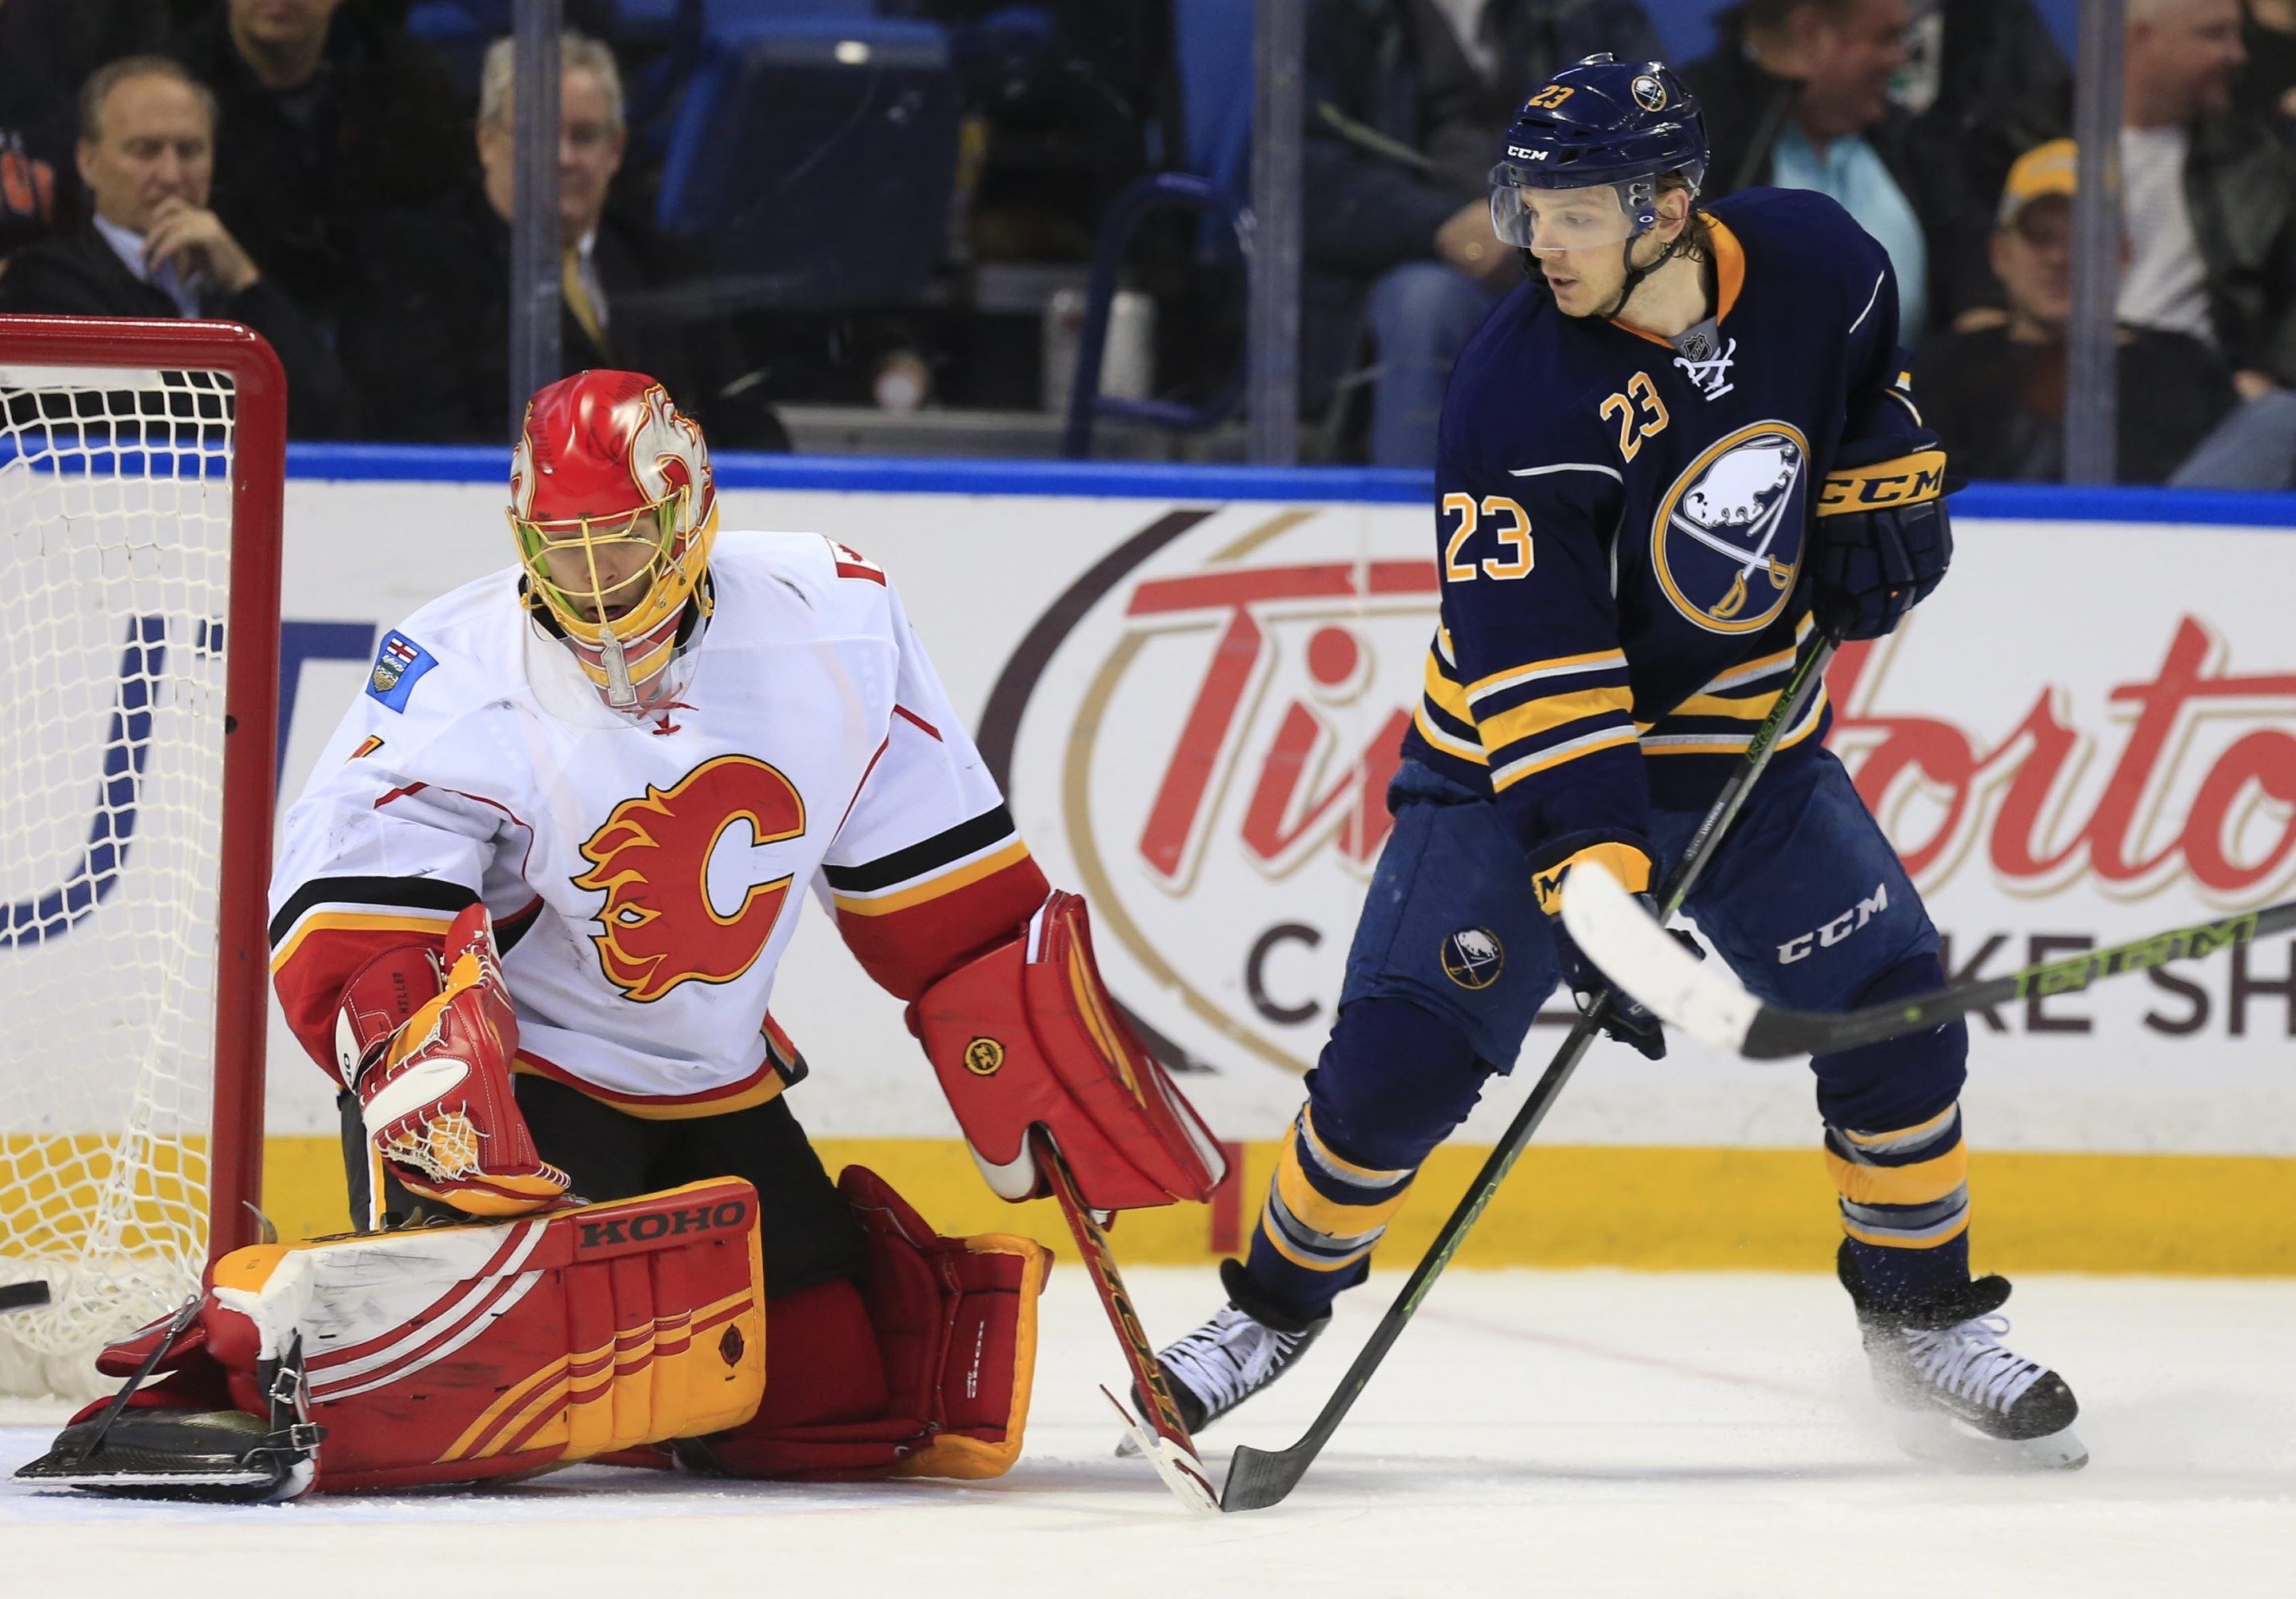 Buffalo's Sam Reinhart tips the puck in front of Calgary goaltender Jonas Hiller in the third period.